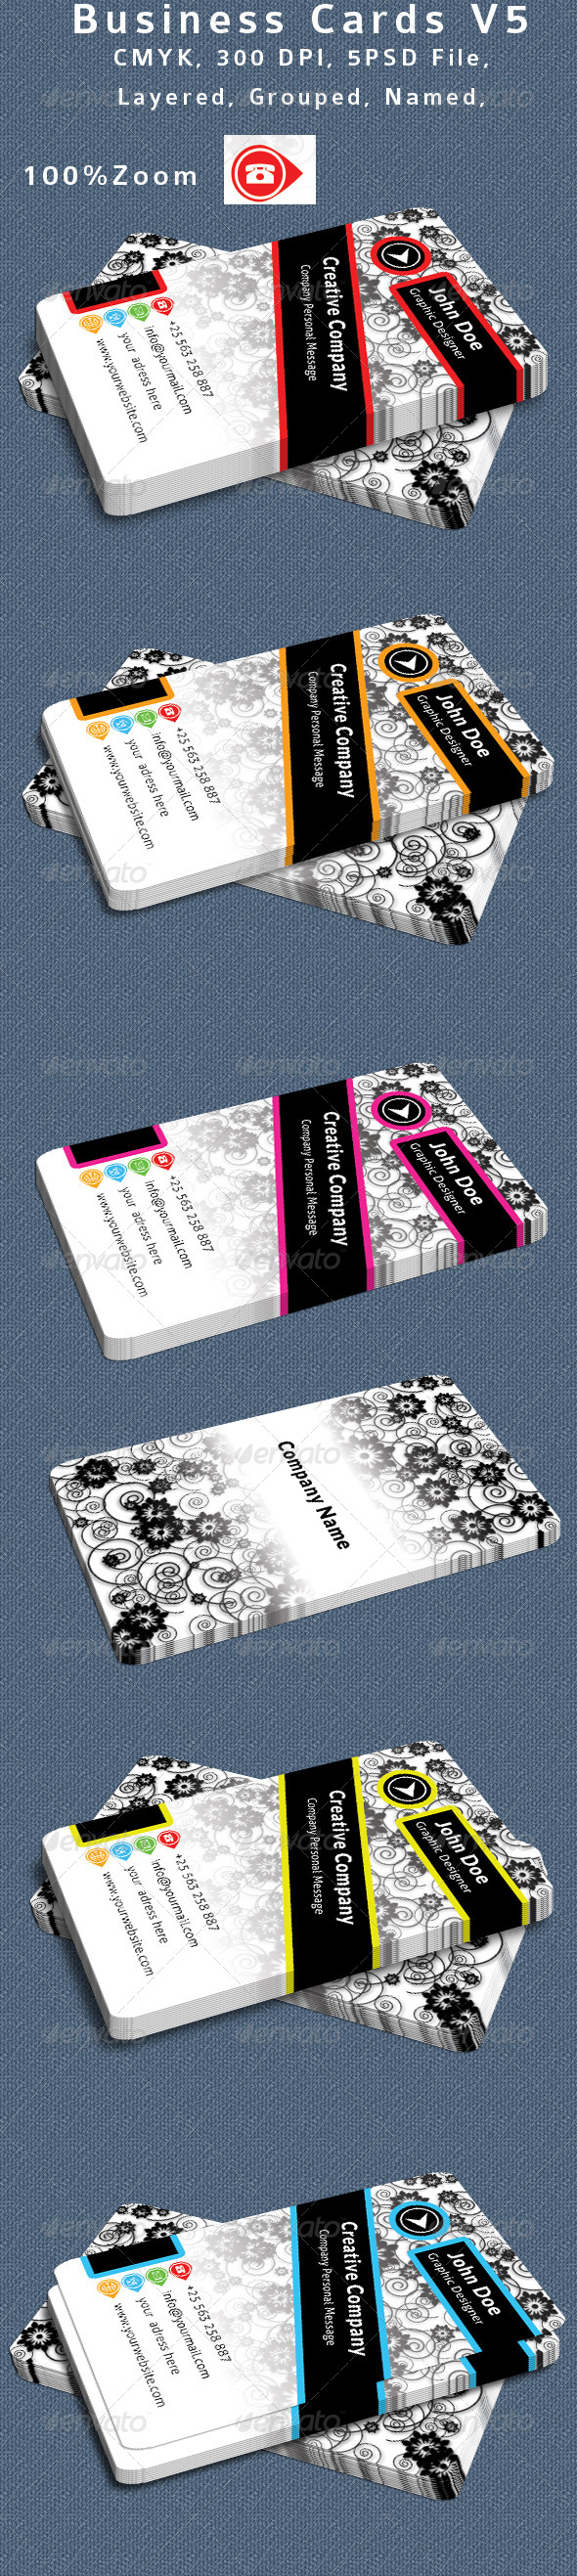 Textured Business Card V5 - Creative Business Cards